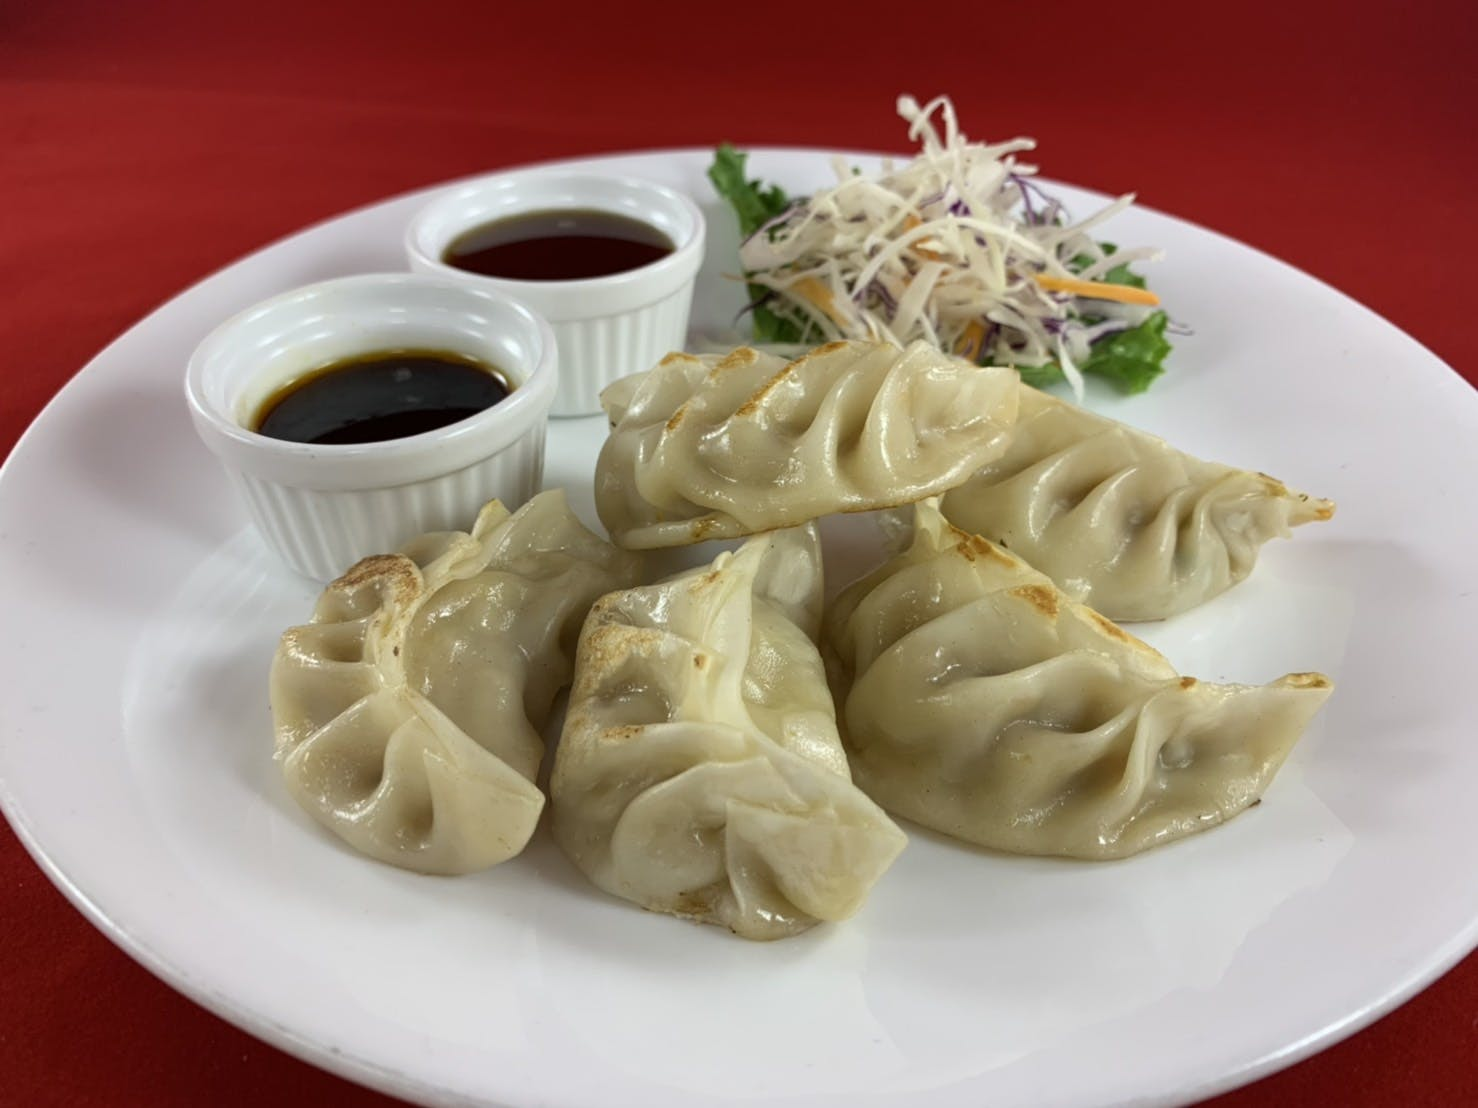 10B. Pot Sticker (Dinner) from Sa-Bai Thong - University Ave in Madison, WI